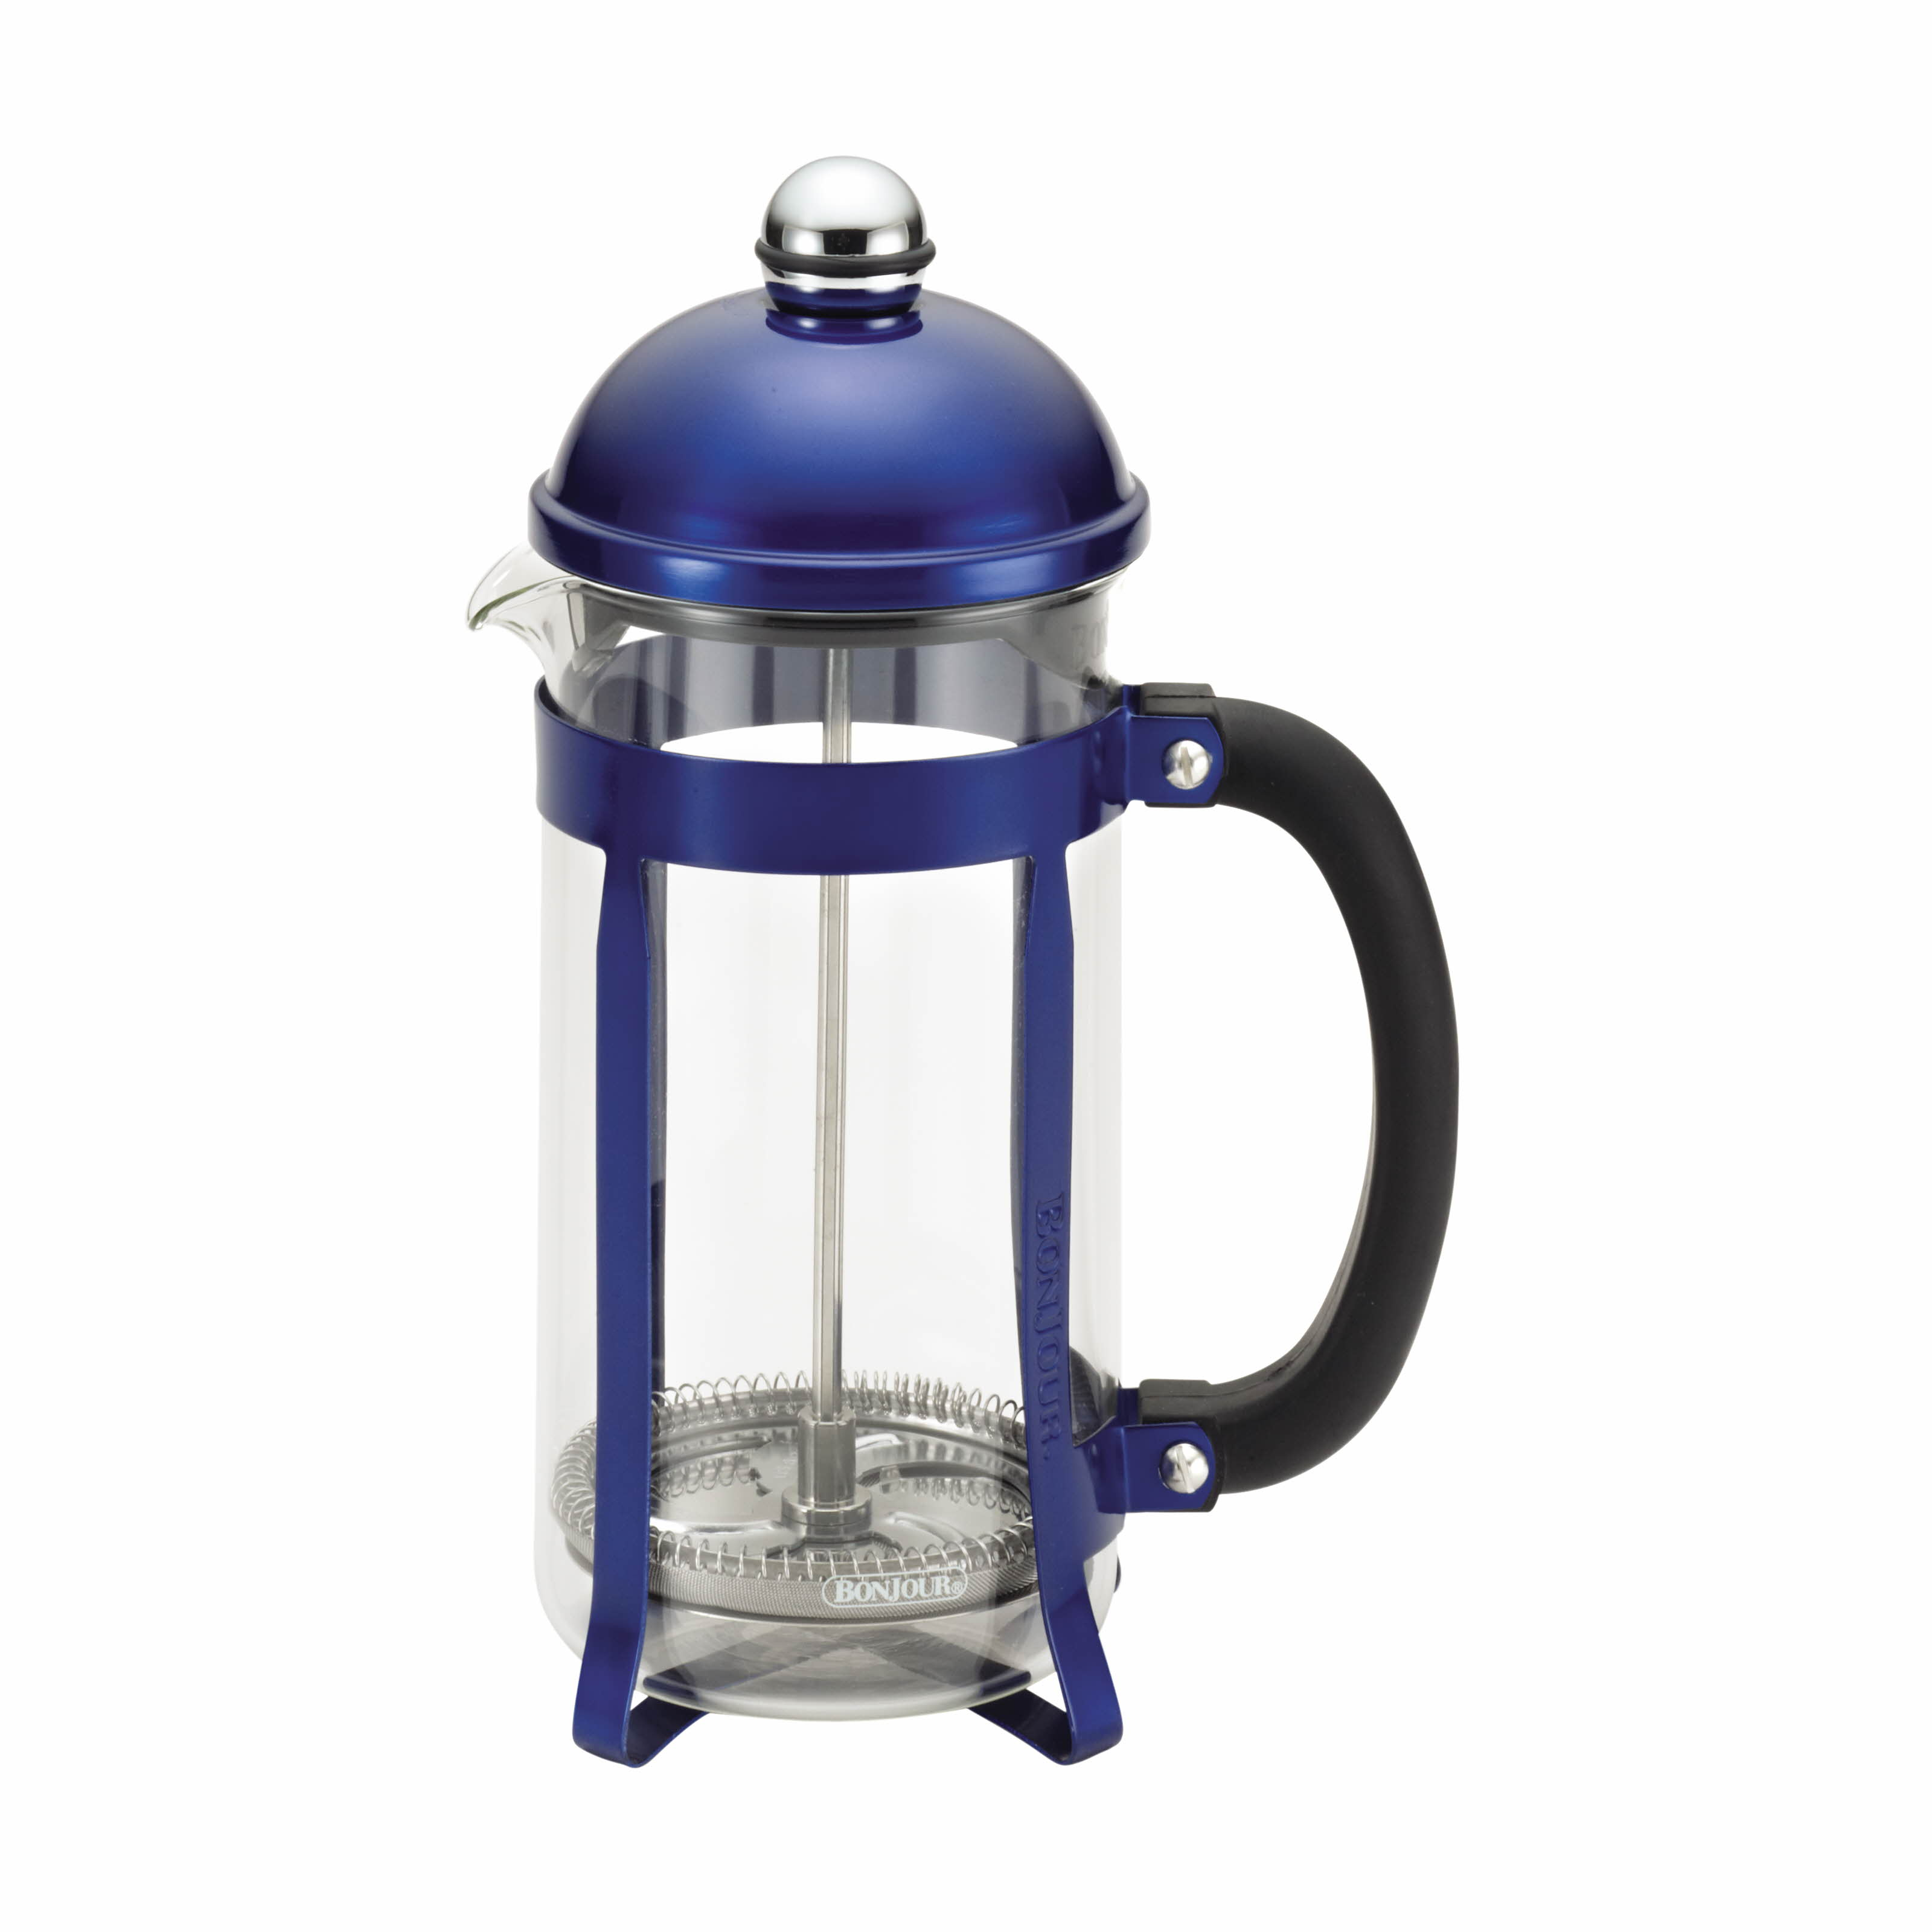 Best French Press Coffee Maker 2014 : Meyer Corporation, U.S. Refreshes BonJour Coffee Brewers Line Kitchenware News & Housewares ...